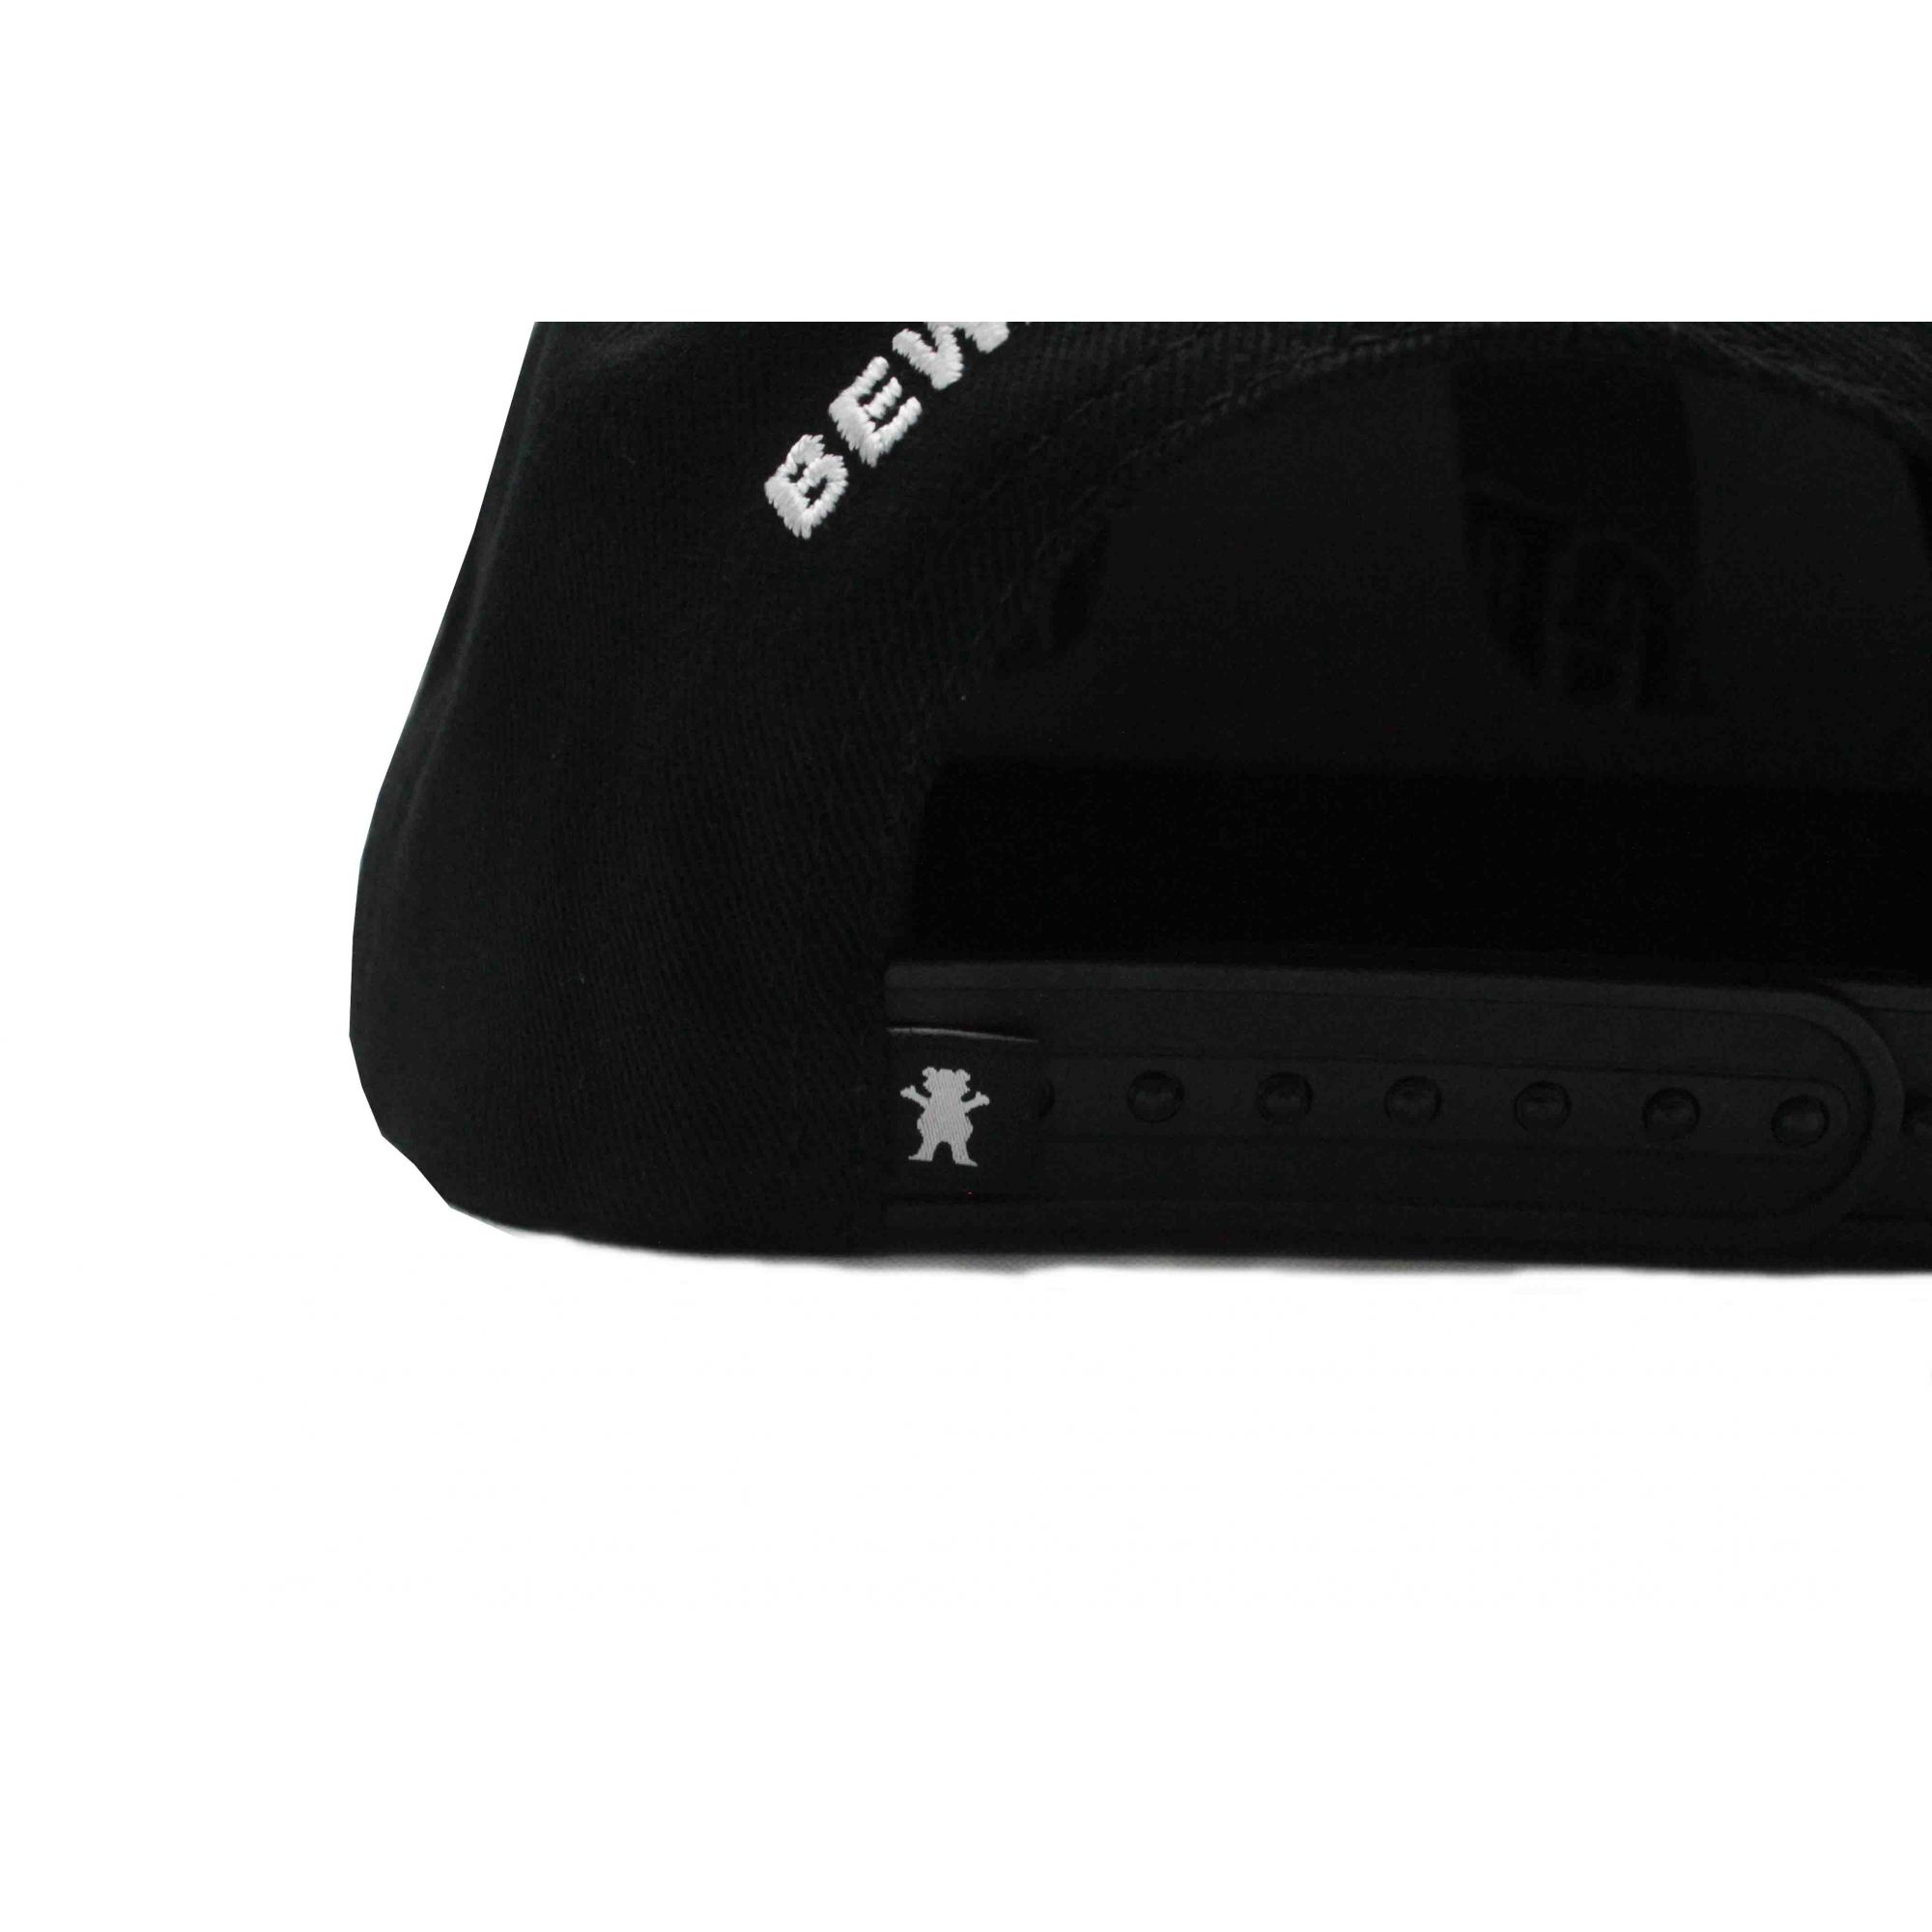 Boné Grizzly Snapback Top Team Black